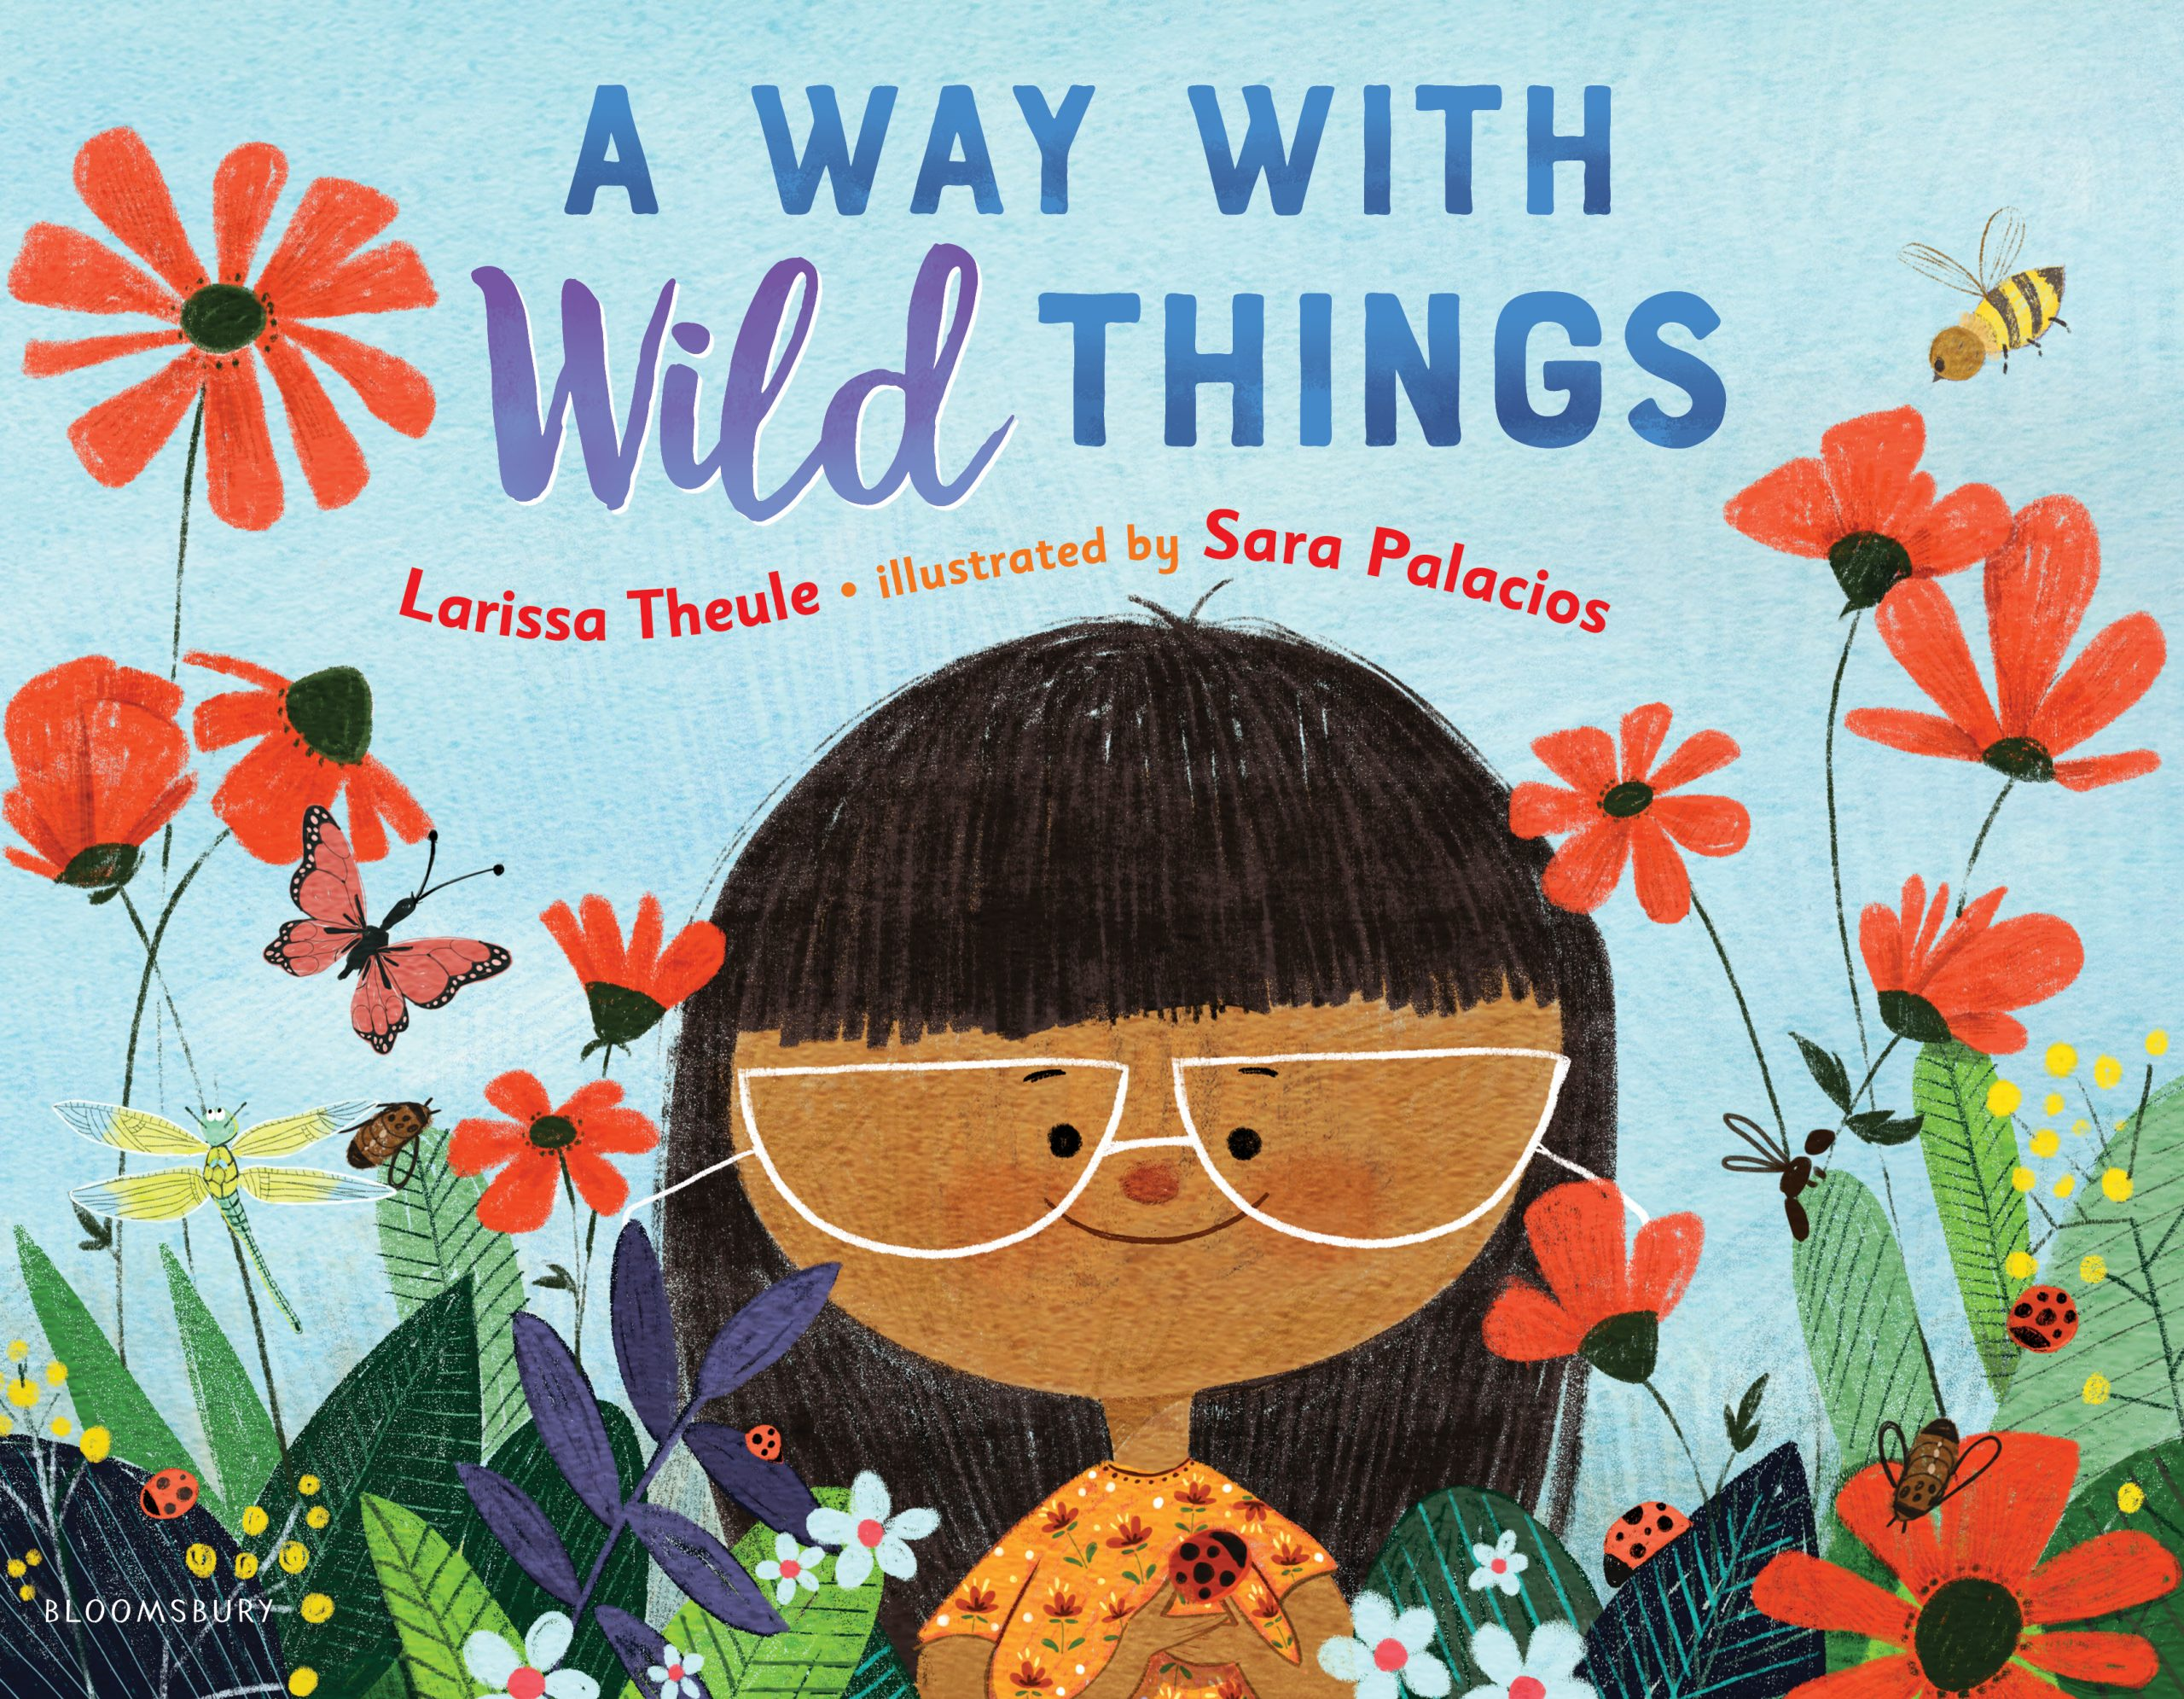 A Way with Wild Things by Larissa Theule, illustrated by Sara Palacios